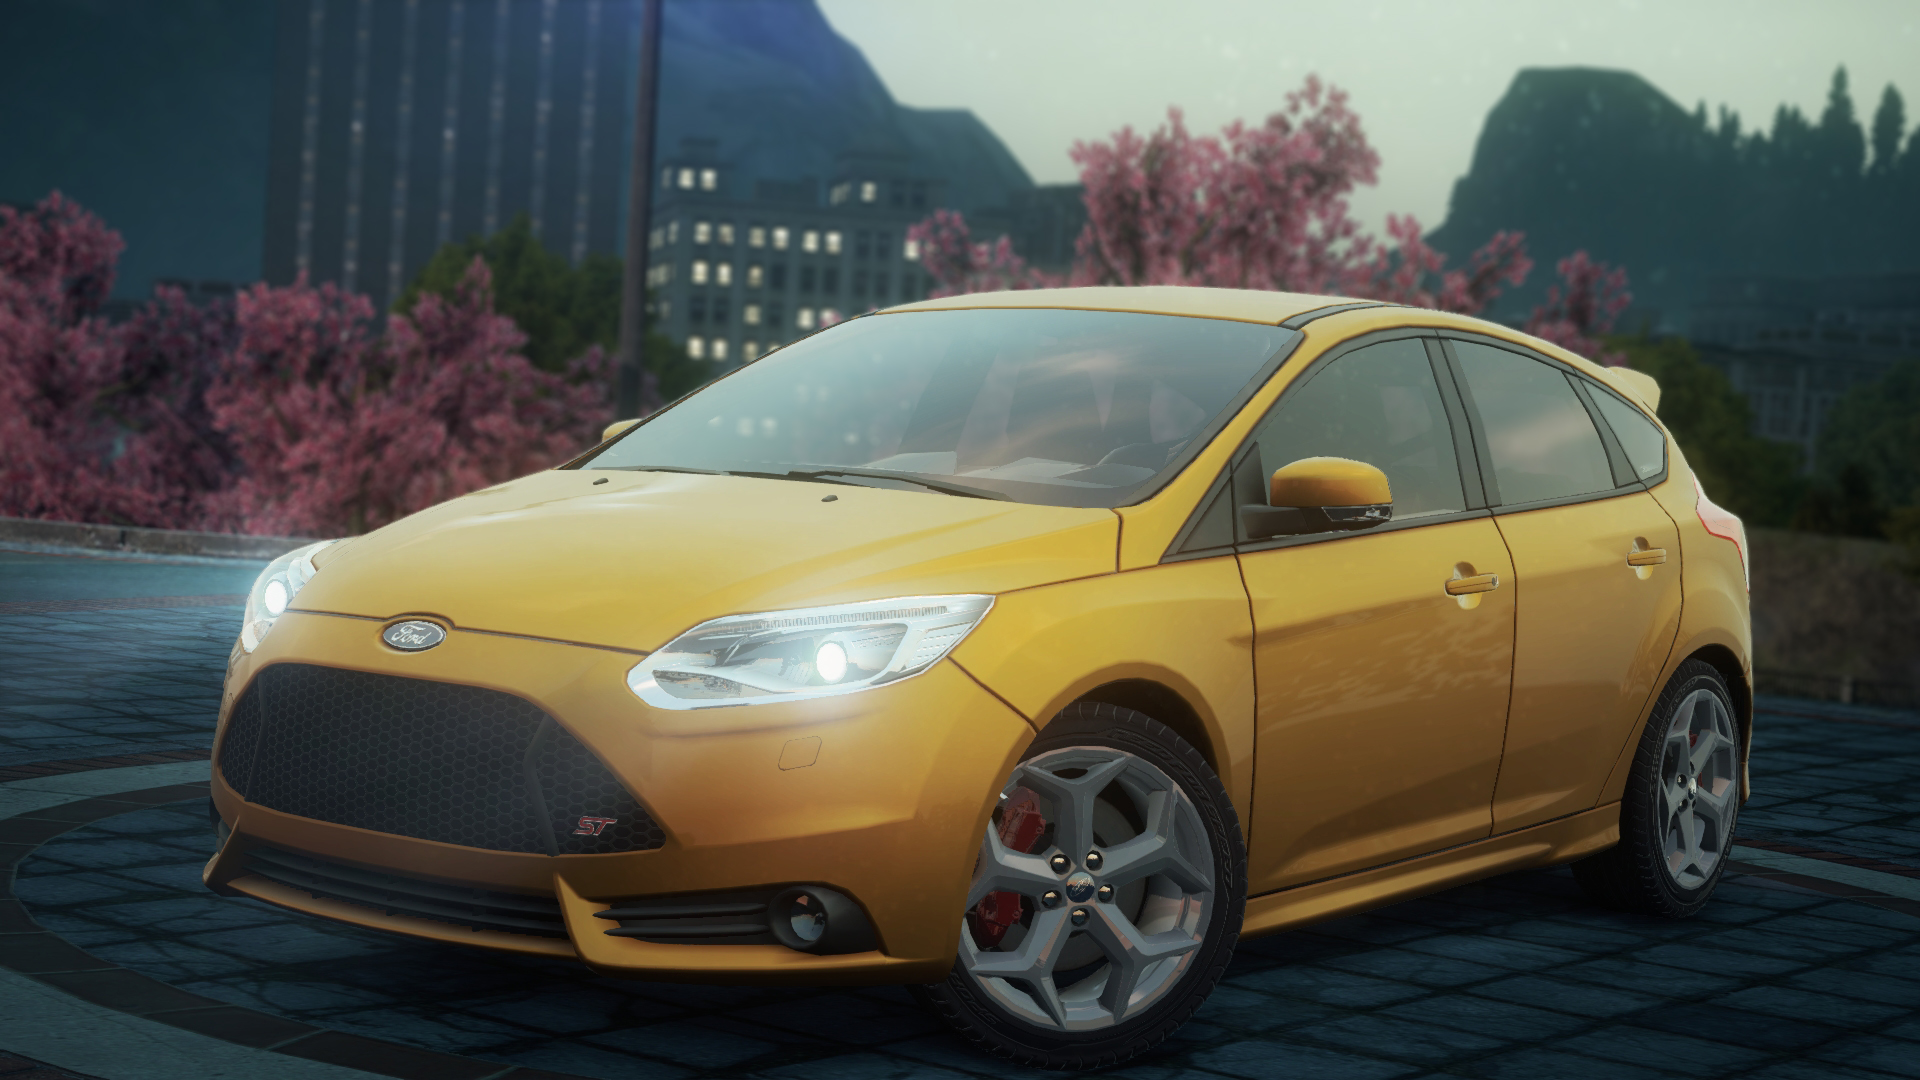 ford focus st gen 3 need for speed wiki fandom powered by wikia. Black Bedroom Furniture Sets. Home Design Ideas